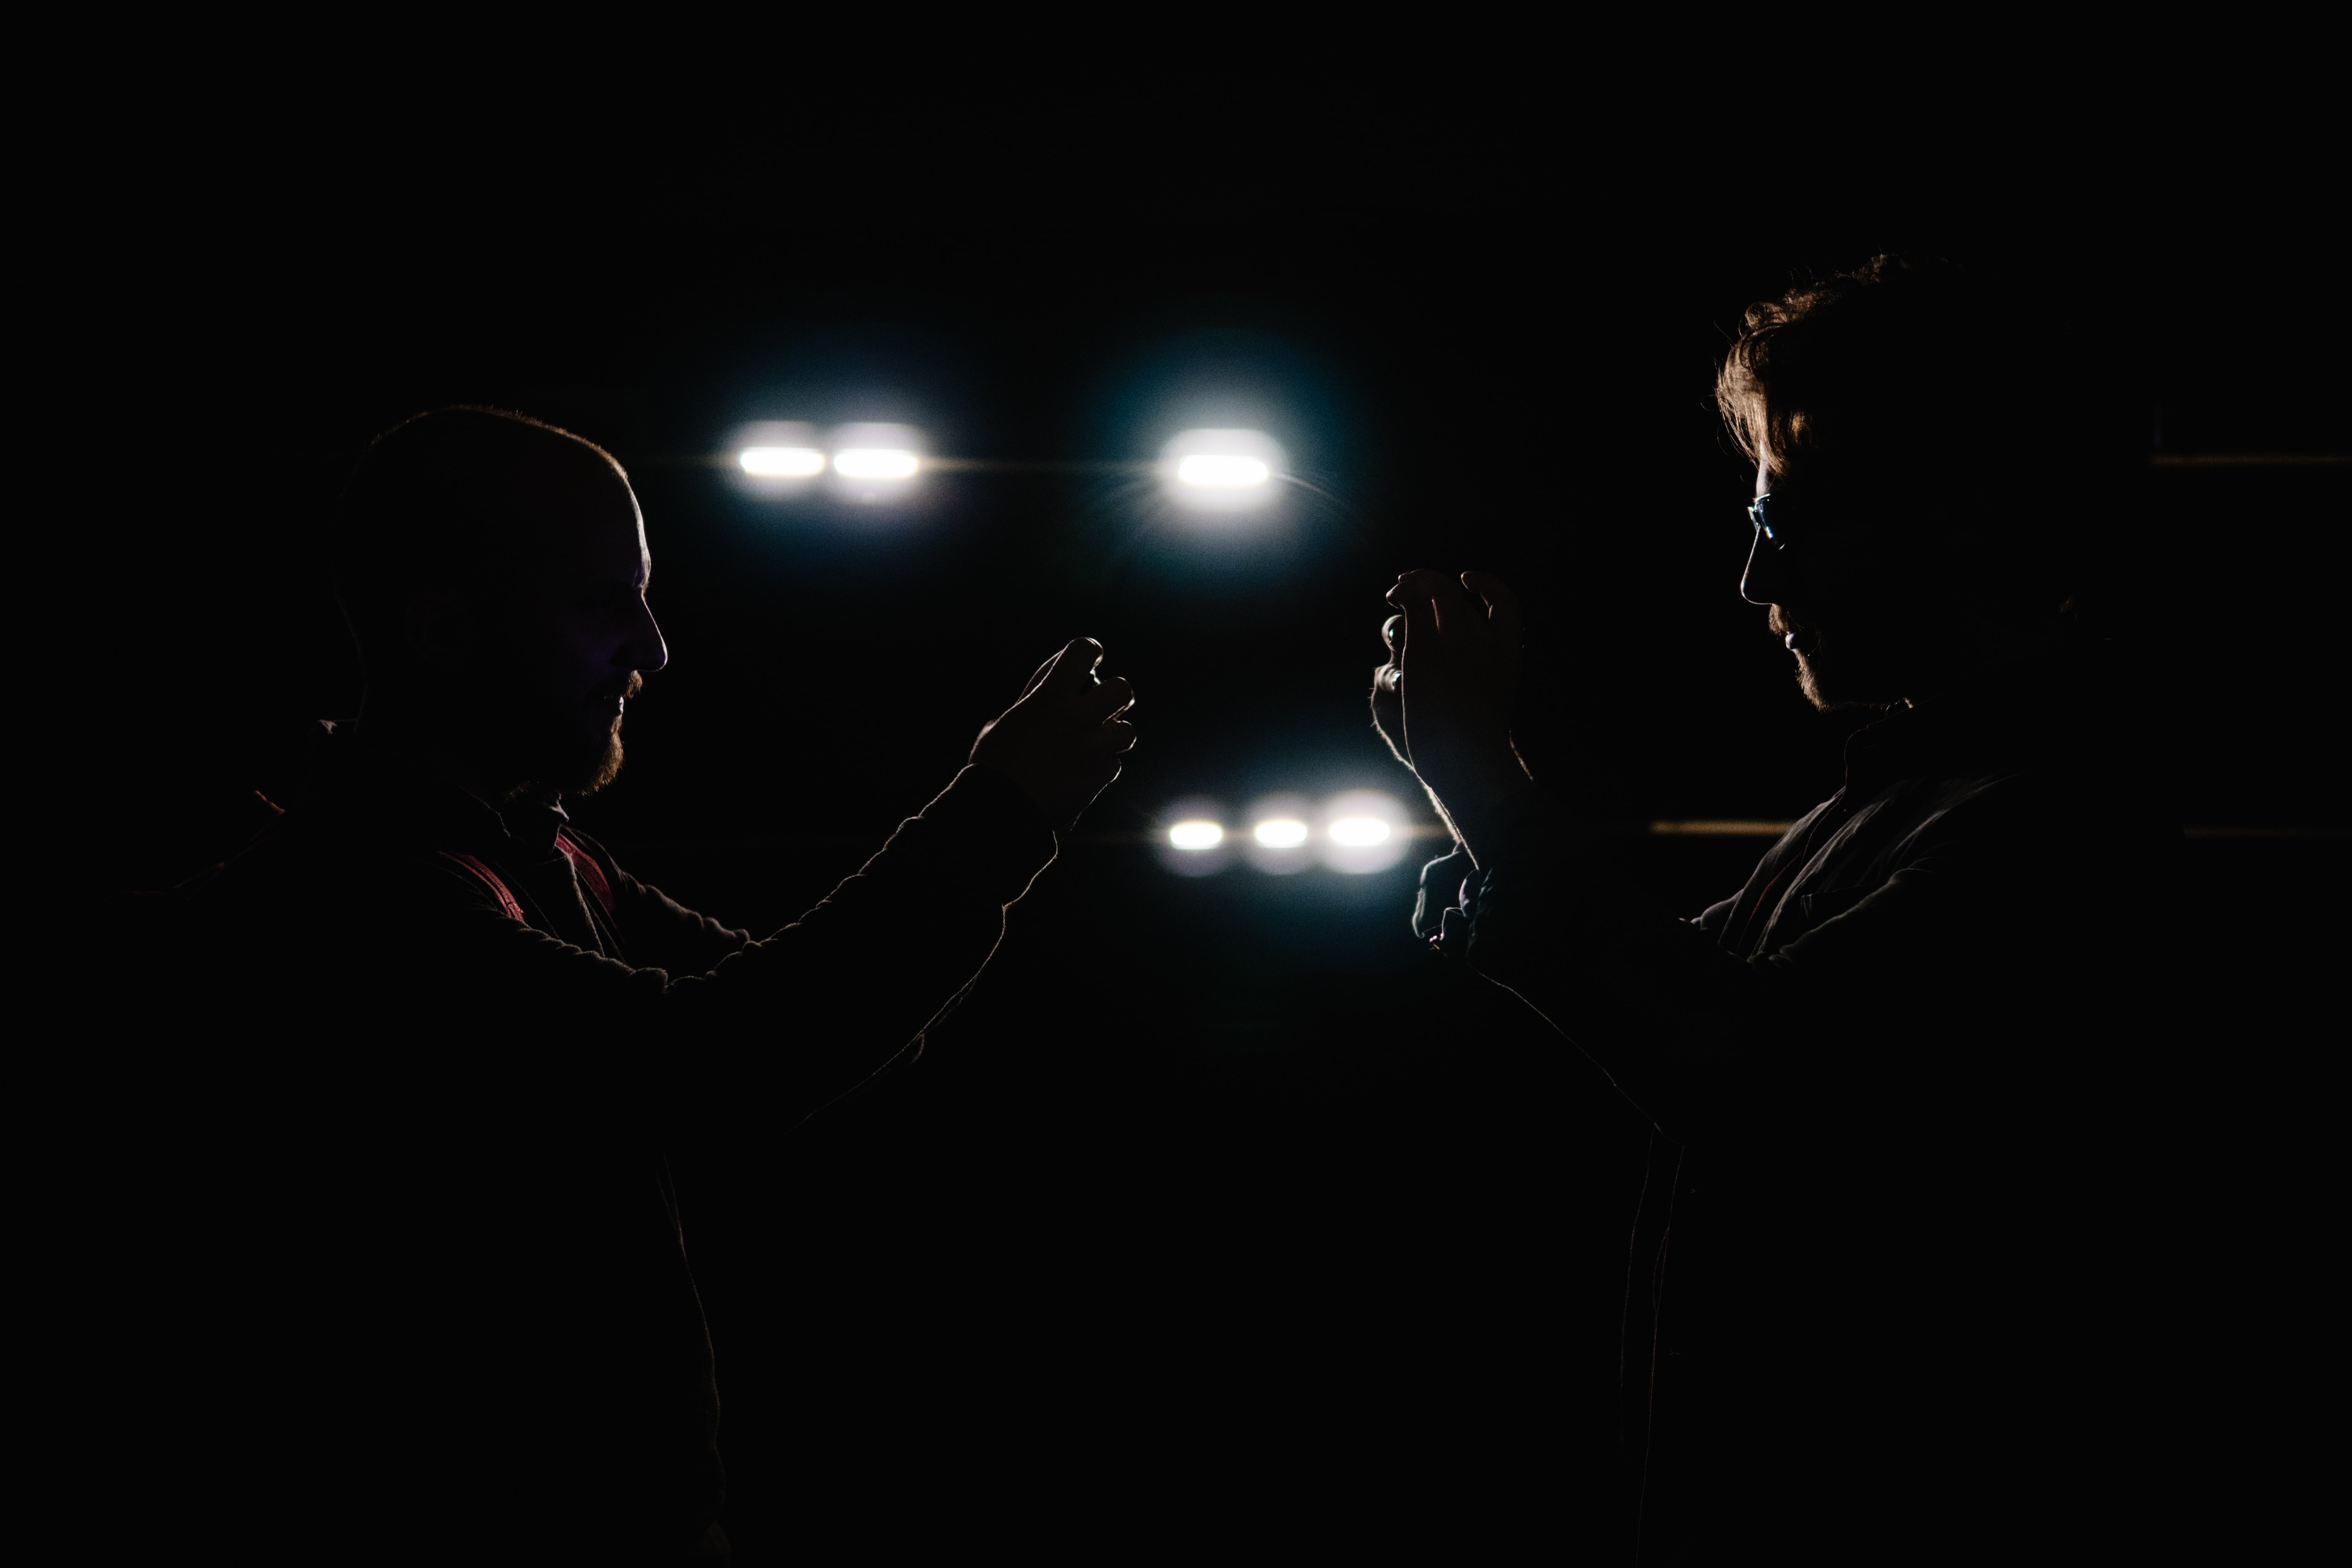 Silhouette of two men facing each other taking a picture in the dark